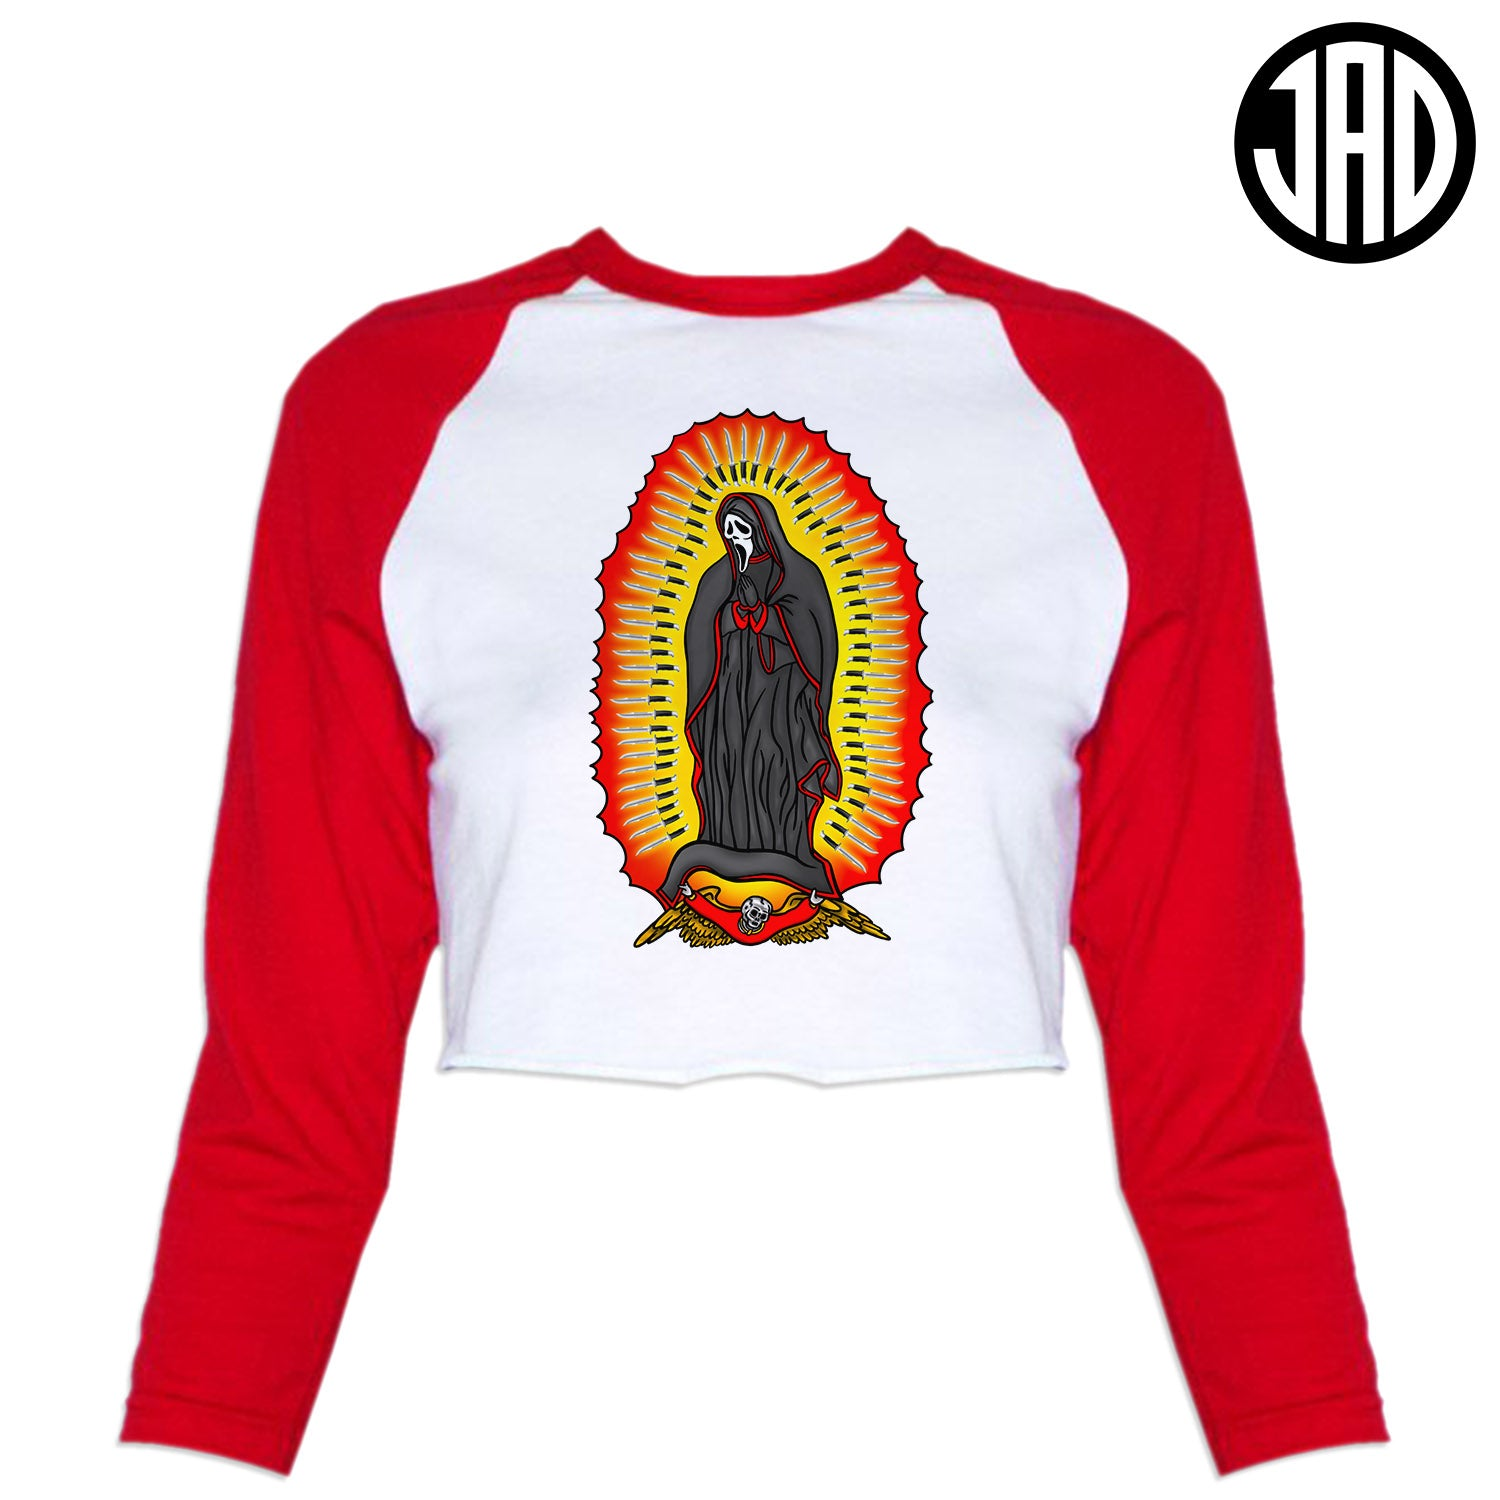 Saint Of Woodsboro 2 - Women's Cropped Baseball Tee